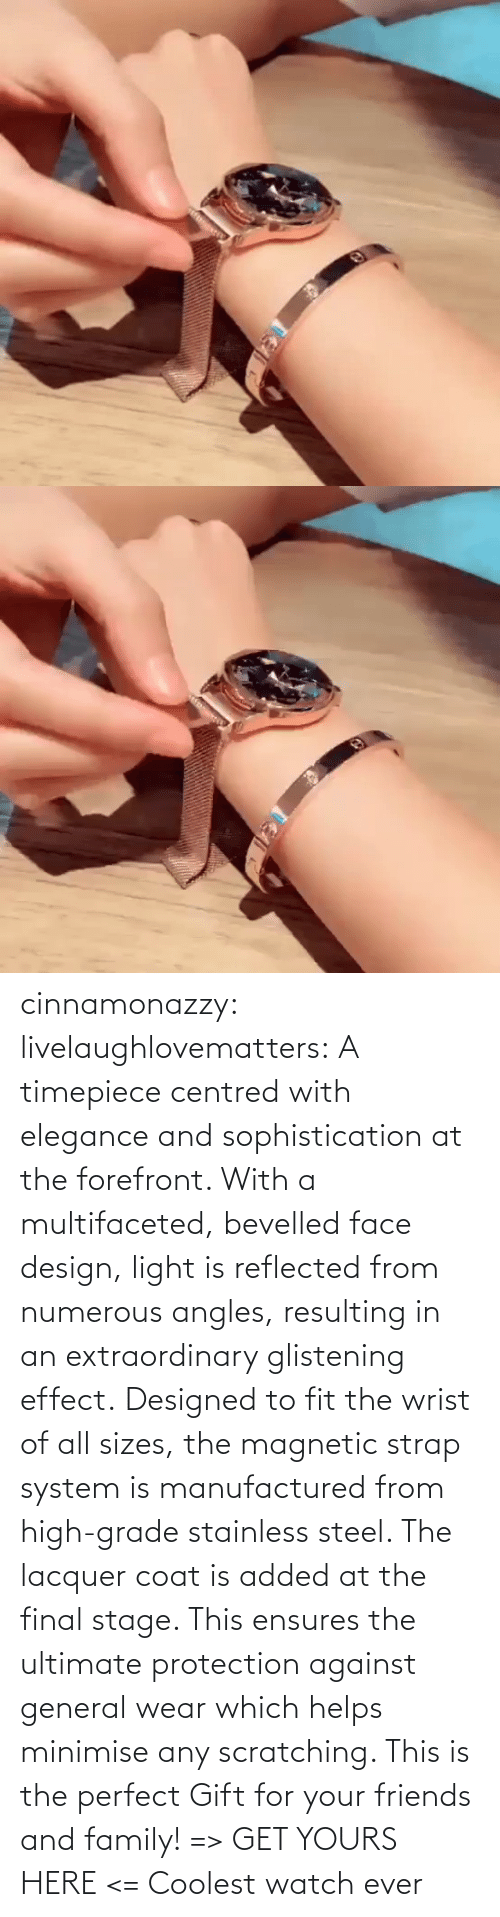 yours: cinnamonazzy:  livelaughlovematters: A timepiece centred with elegance and sophistication at the forefront. With a multifaceted, bevelled face design, light is reflected from numerous angles, resulting in an extraordinary glistening effect. Designed to fit the wrist of all sizes, the magnetic strap system is manufactured from high-grade stainless steel. The lacquer coat is added at the final stage. This ensures the ultimate protection against general wear which helps minimise any scratching. This is the perfect Gift for your friends and family! => GET YOURS HERE <=    Coolest watch ever